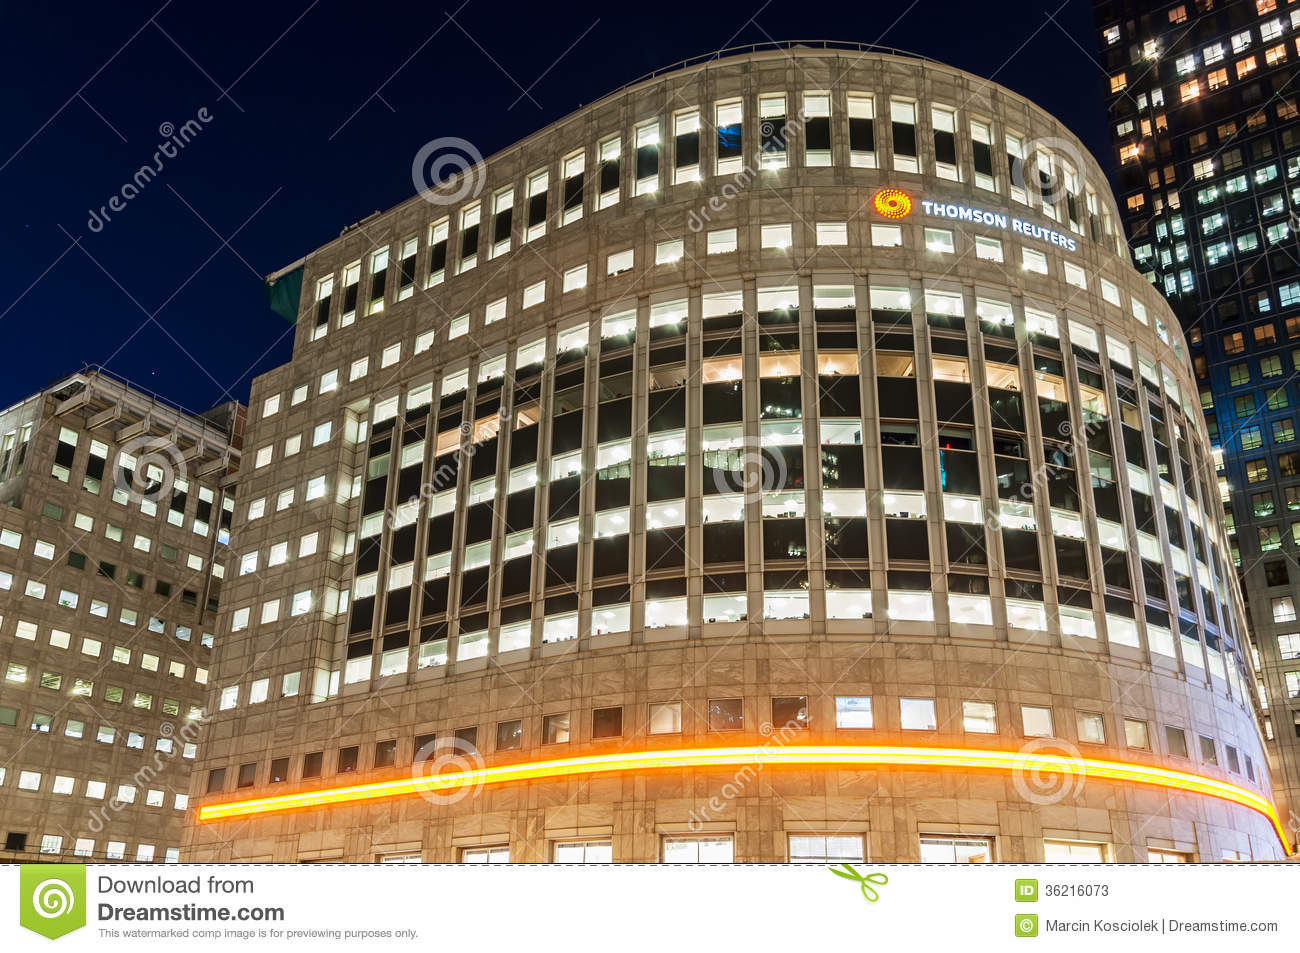 the thomson reuters building in canary wharf editorial stock photo image of district bright. Black Bedroom Furniture Sets. Home Design Ideas